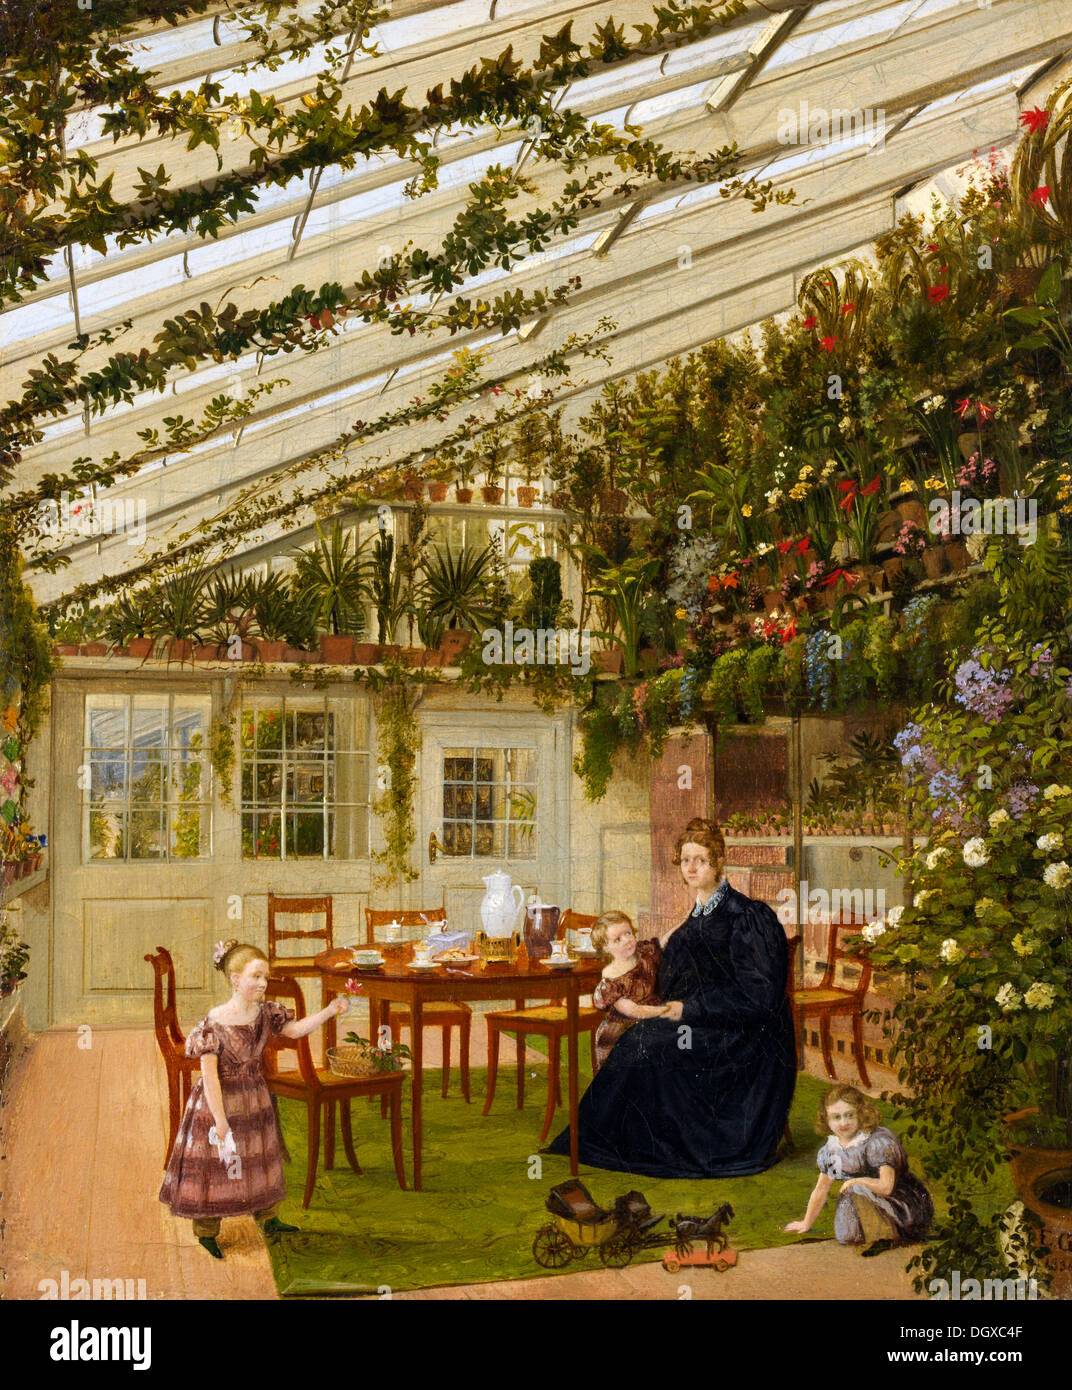 The Family of Mr. Westfal in the Conservatory - by Eduard Gaertner, 1836 - Stock Image